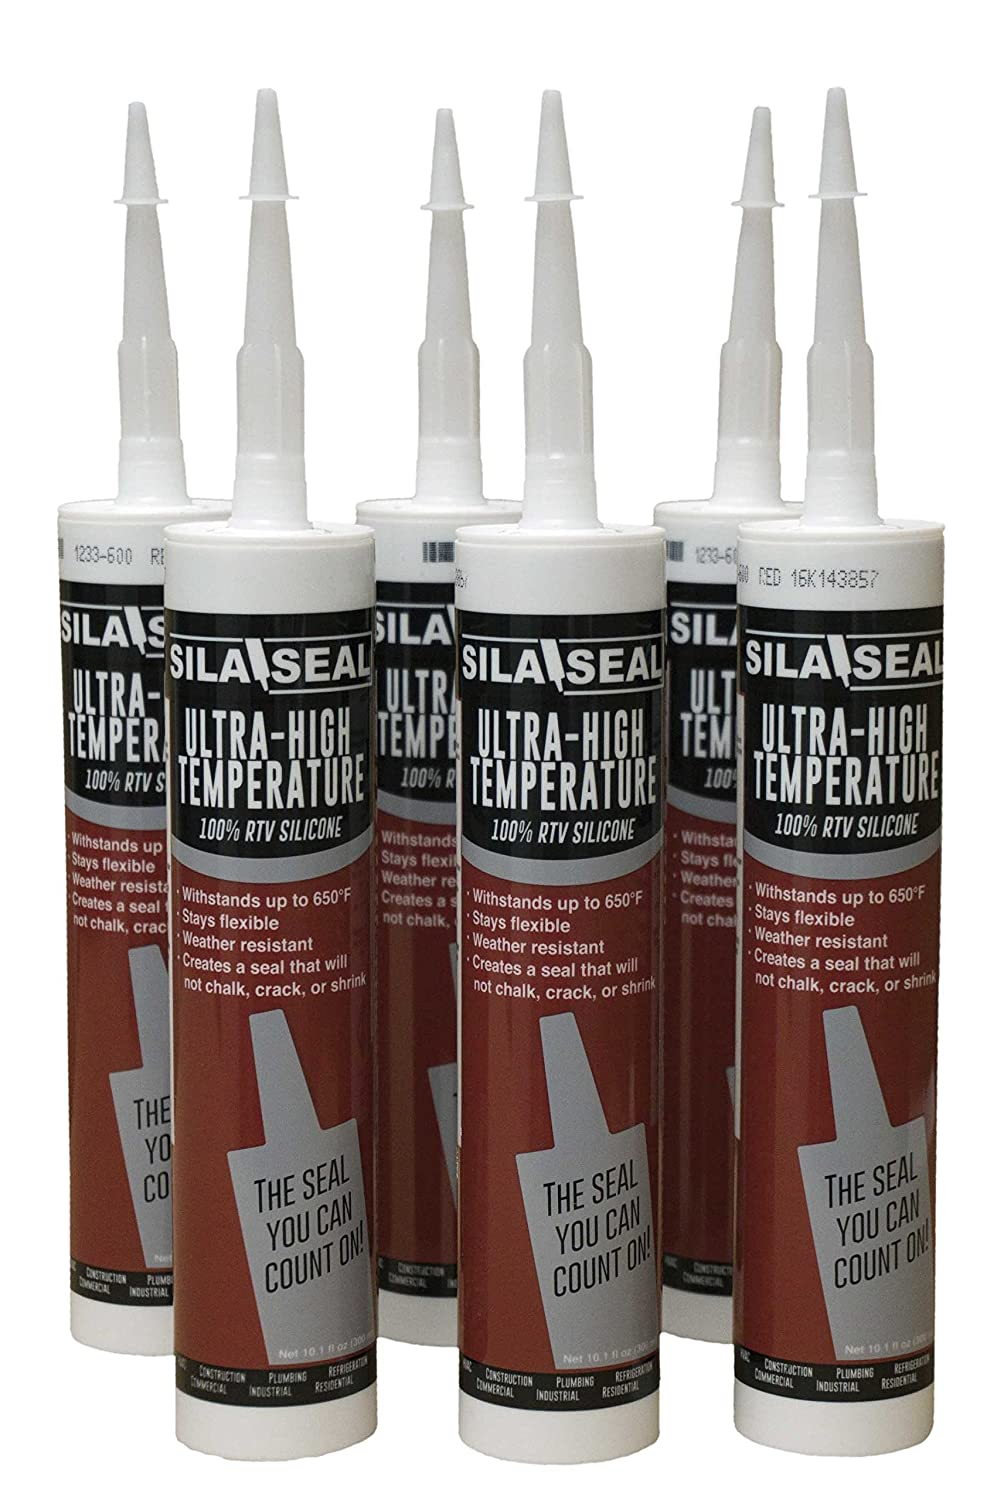 SILA-SEAL Ultra-High Temperature Red (600 Degree) 100% RTV Silicone with reclosable Nozzle (case of 6)